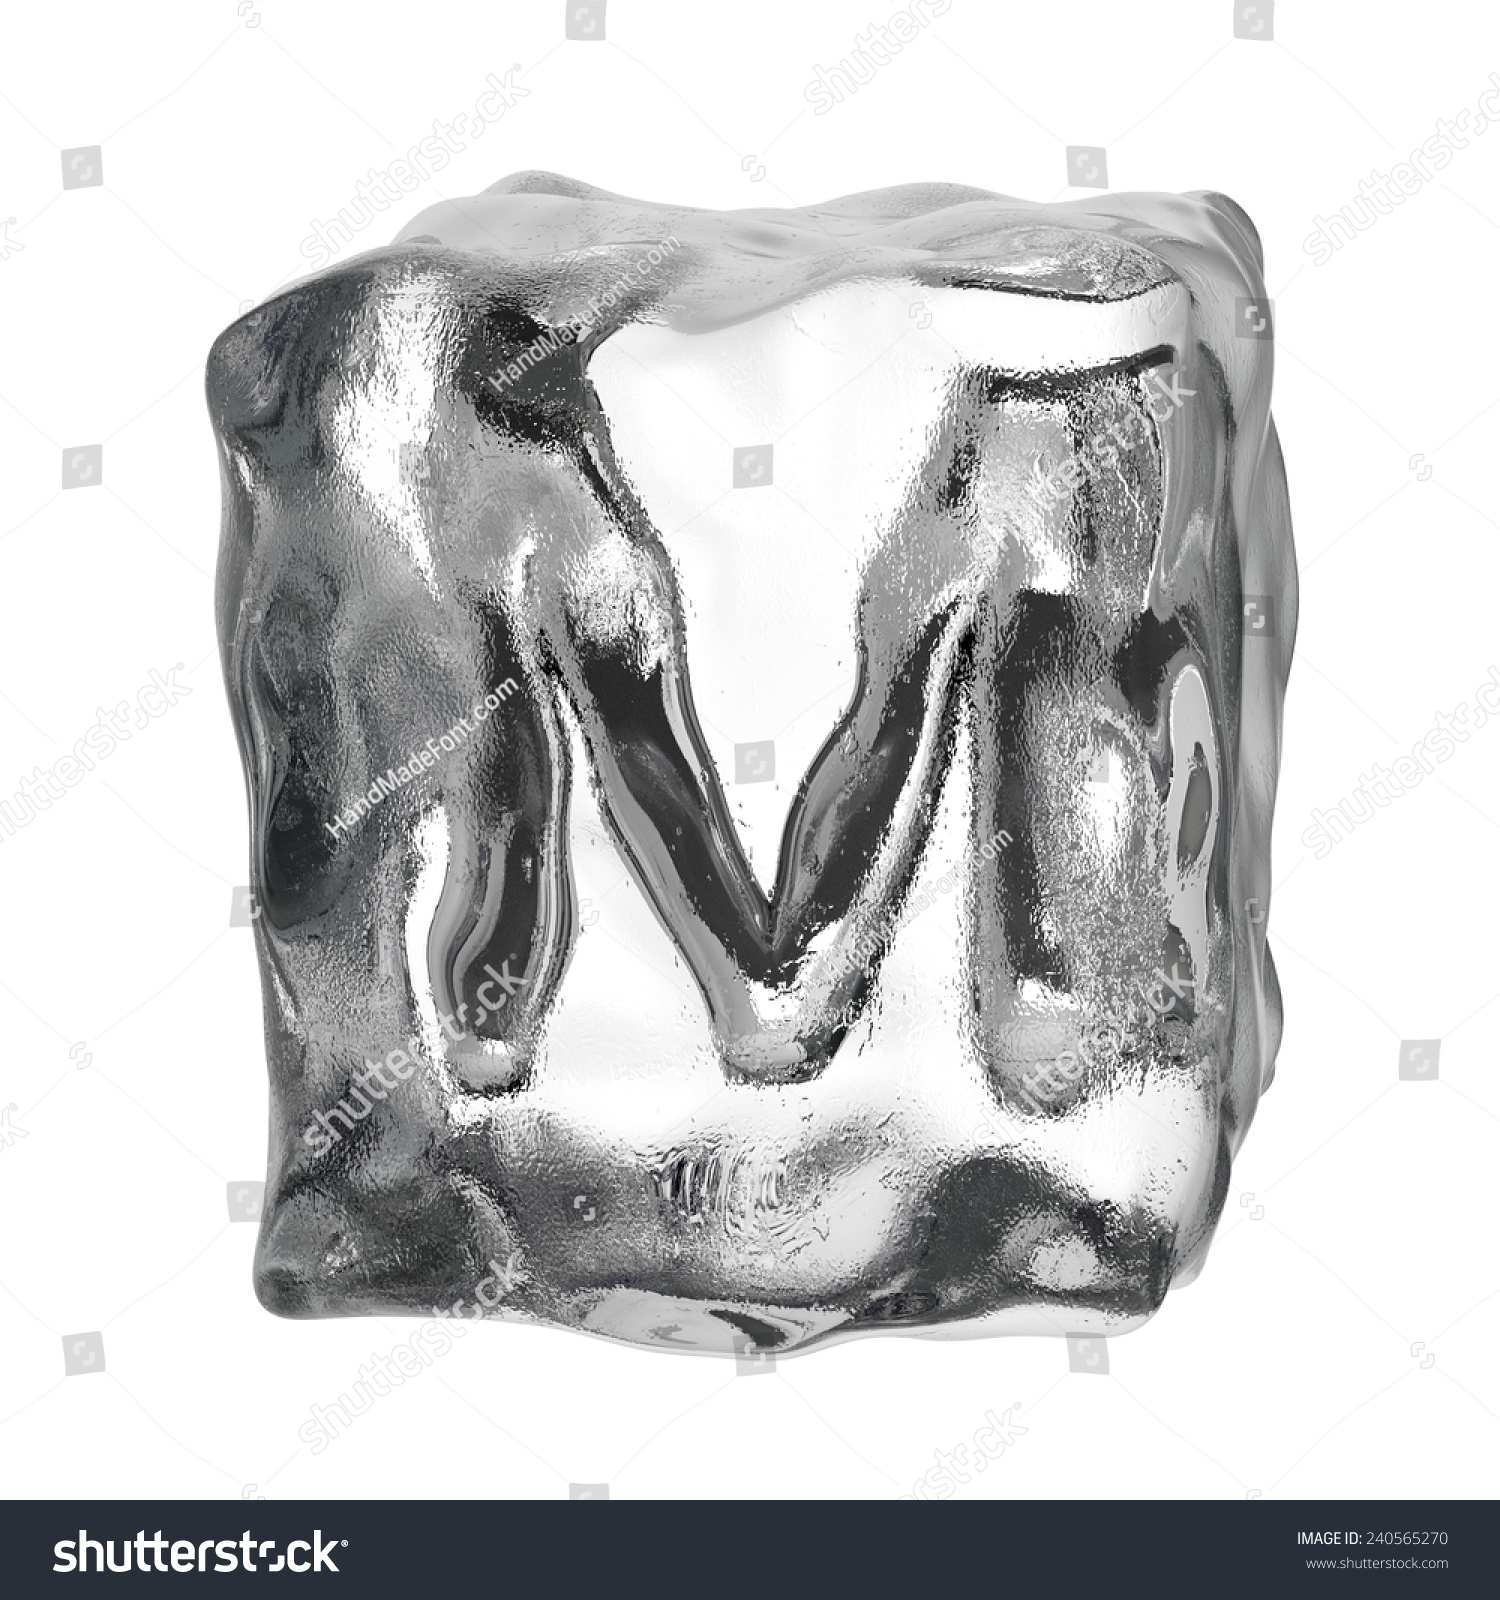 How to draw ice cube letters